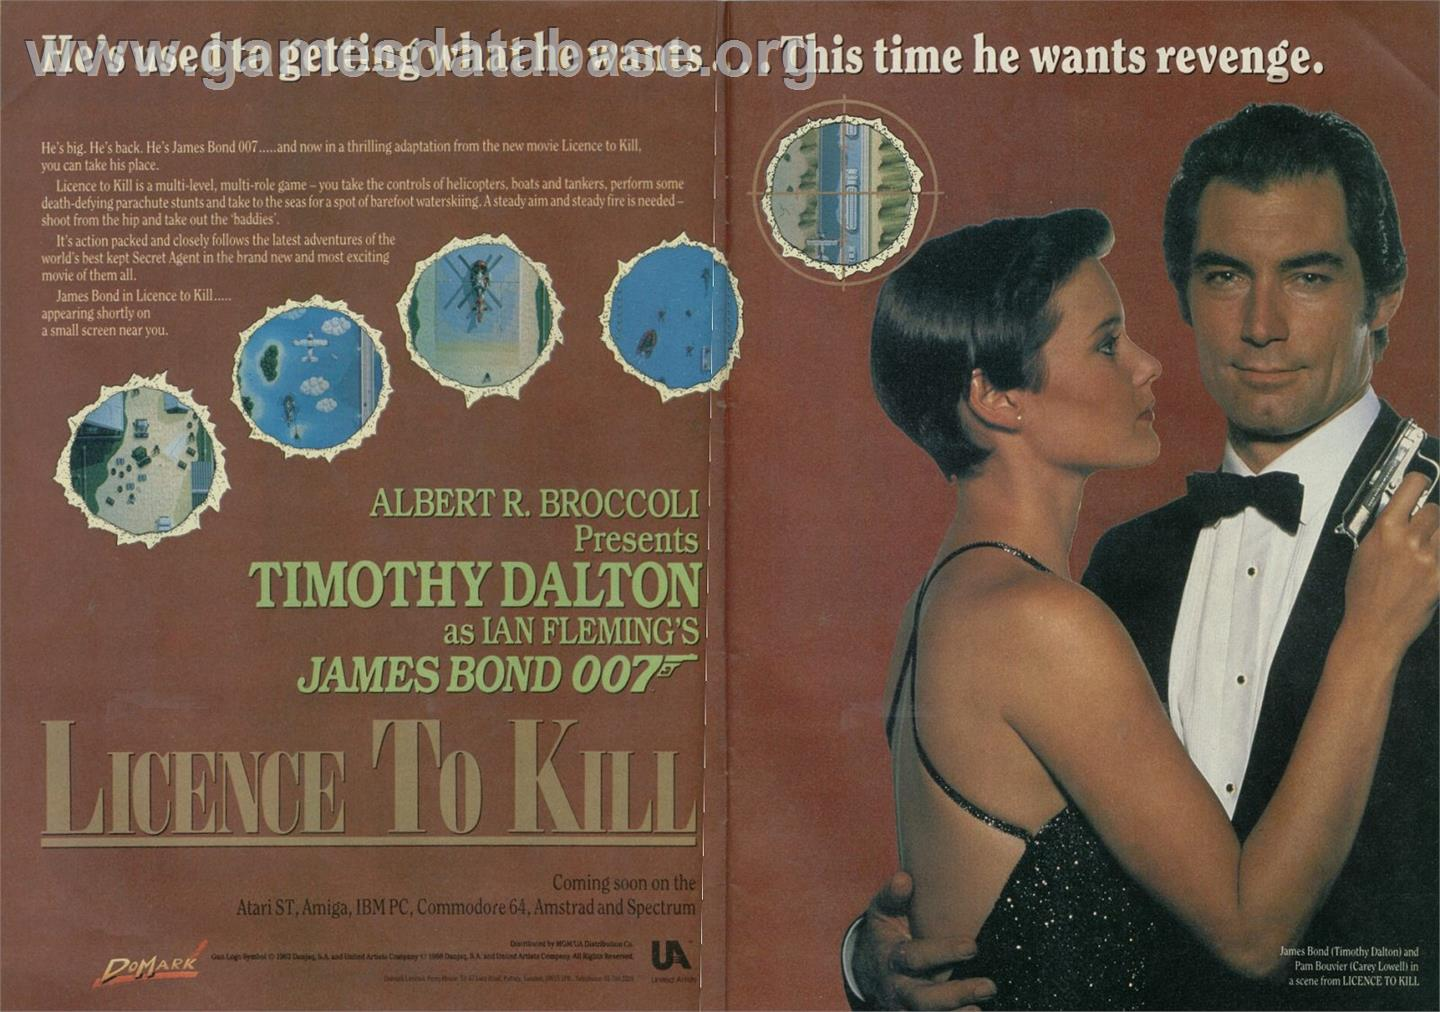 007: Licence to Kill - Sinclair ZX Spectrum - Artwork - Advert